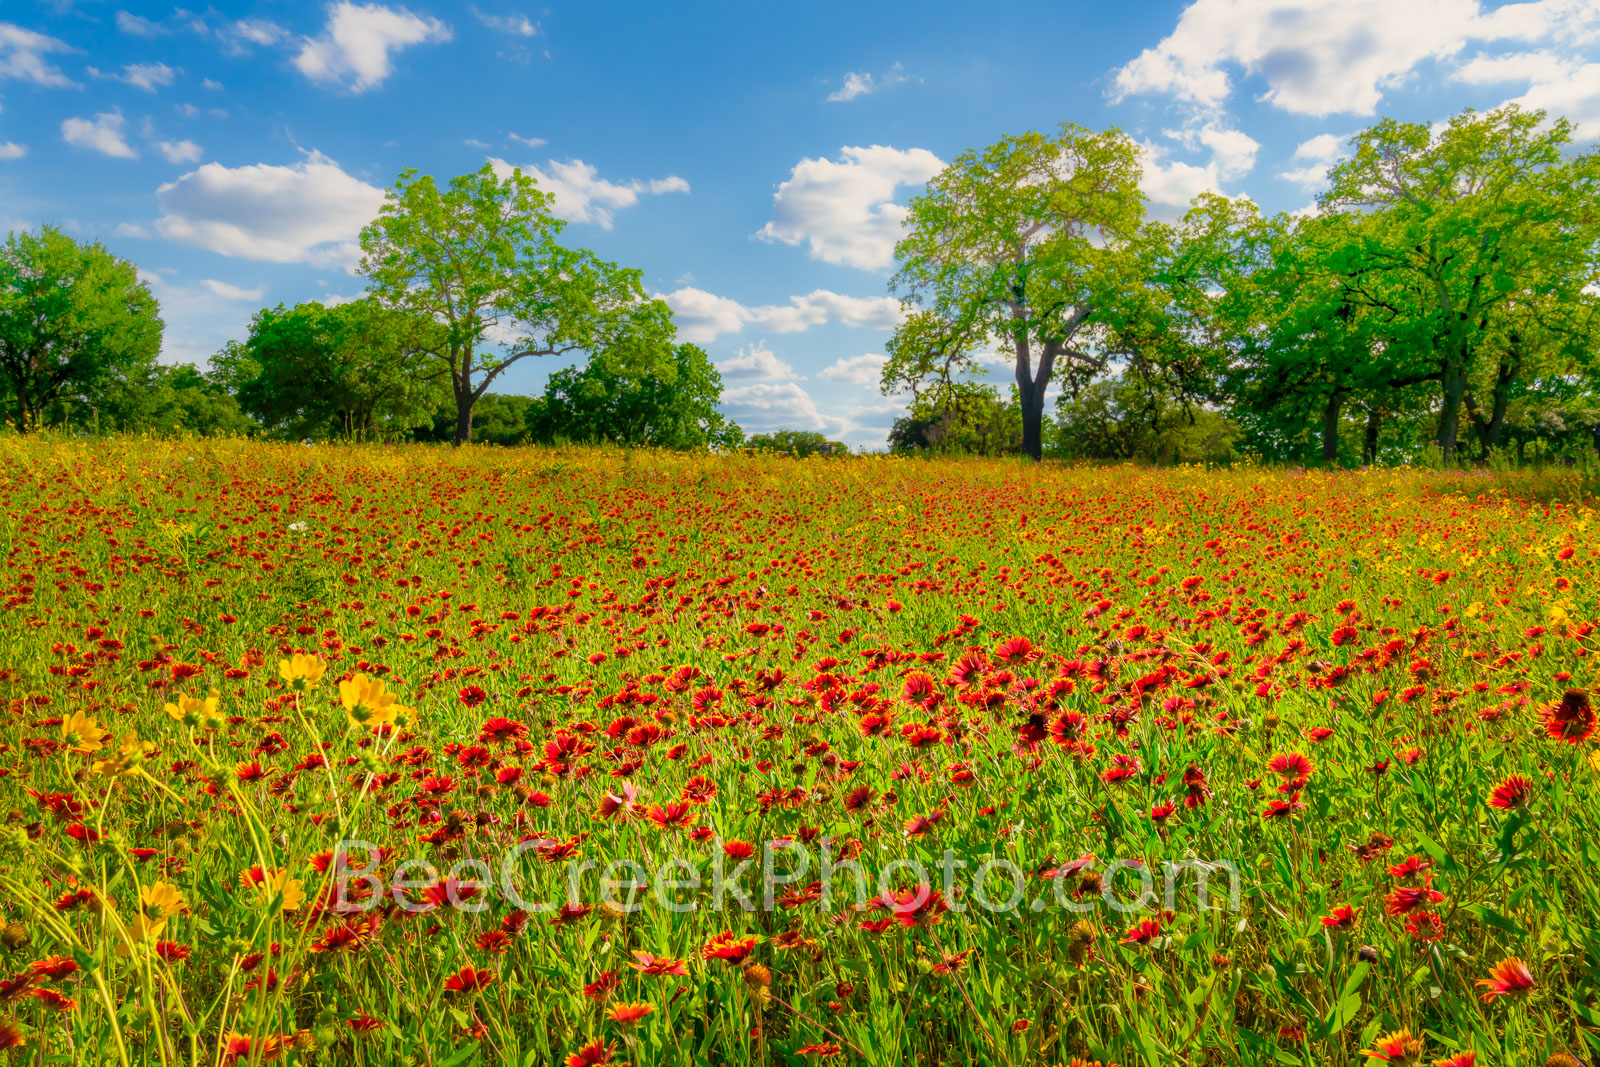 Spring Wildflowers - These wonderful spring wildflowers we found in the Texas hill country were mostly indian blankets and a...